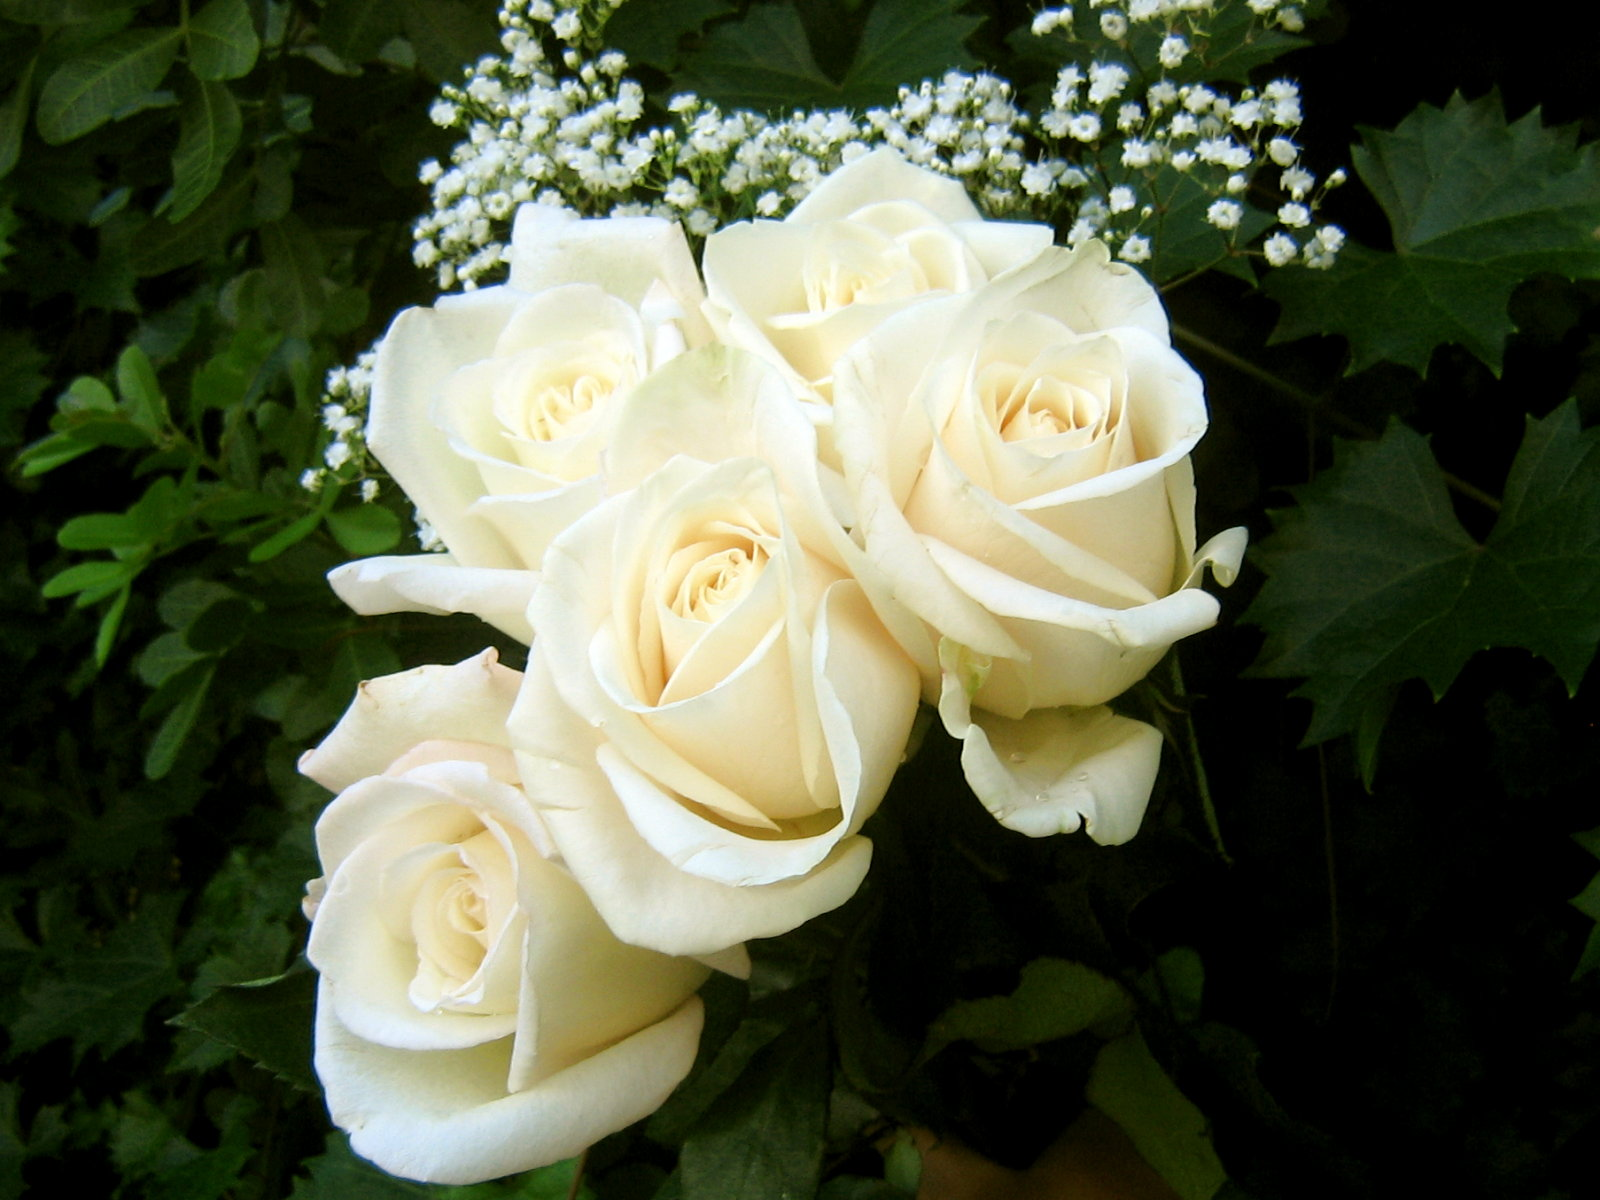 Flowers Wallpapers: White Roses Flowers Wallpapers